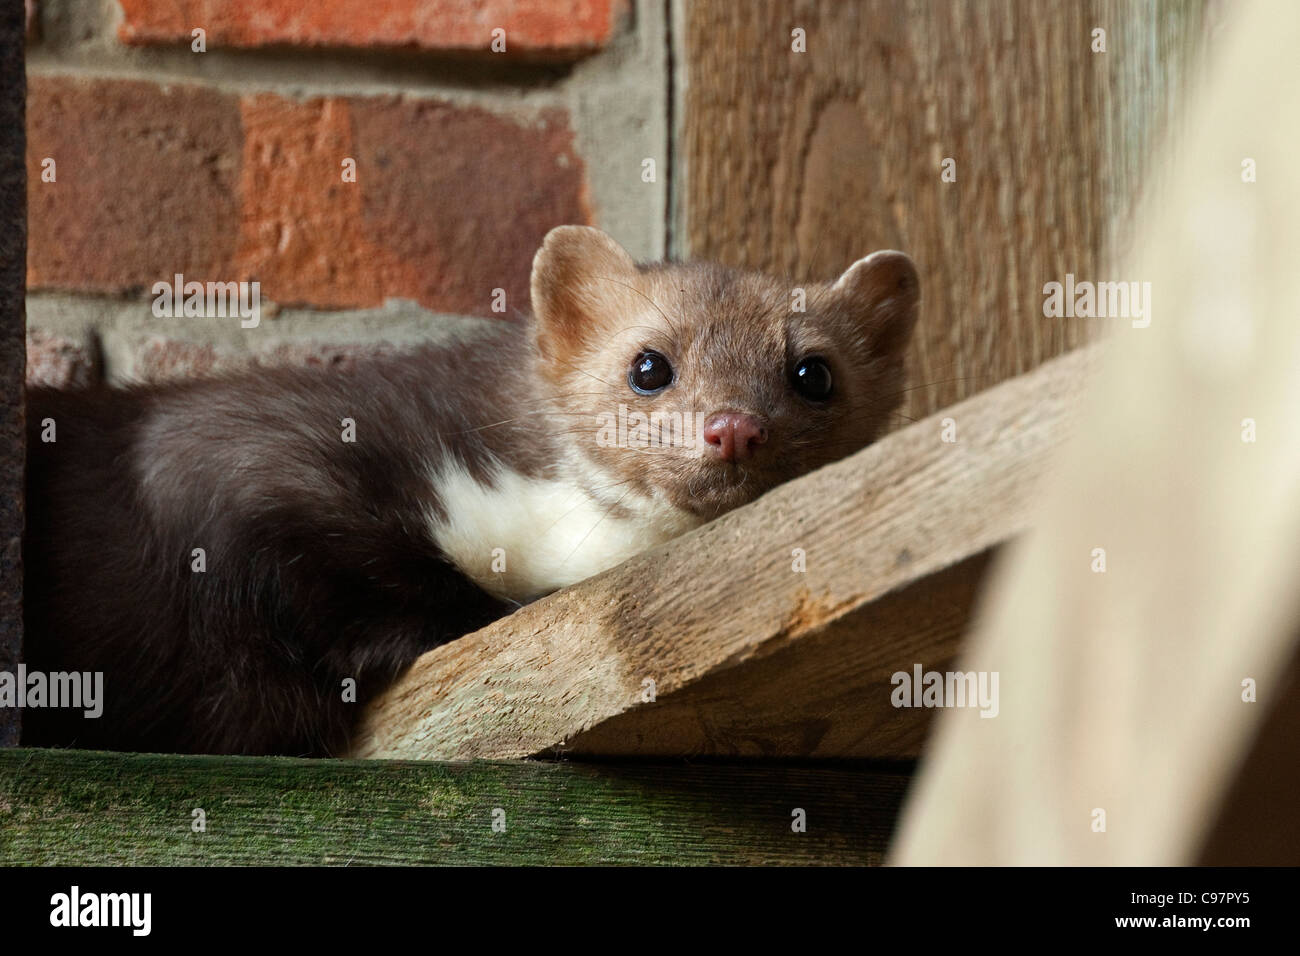 Beech marten (Martes foina) in attic of farm house, Germany - Stock Image